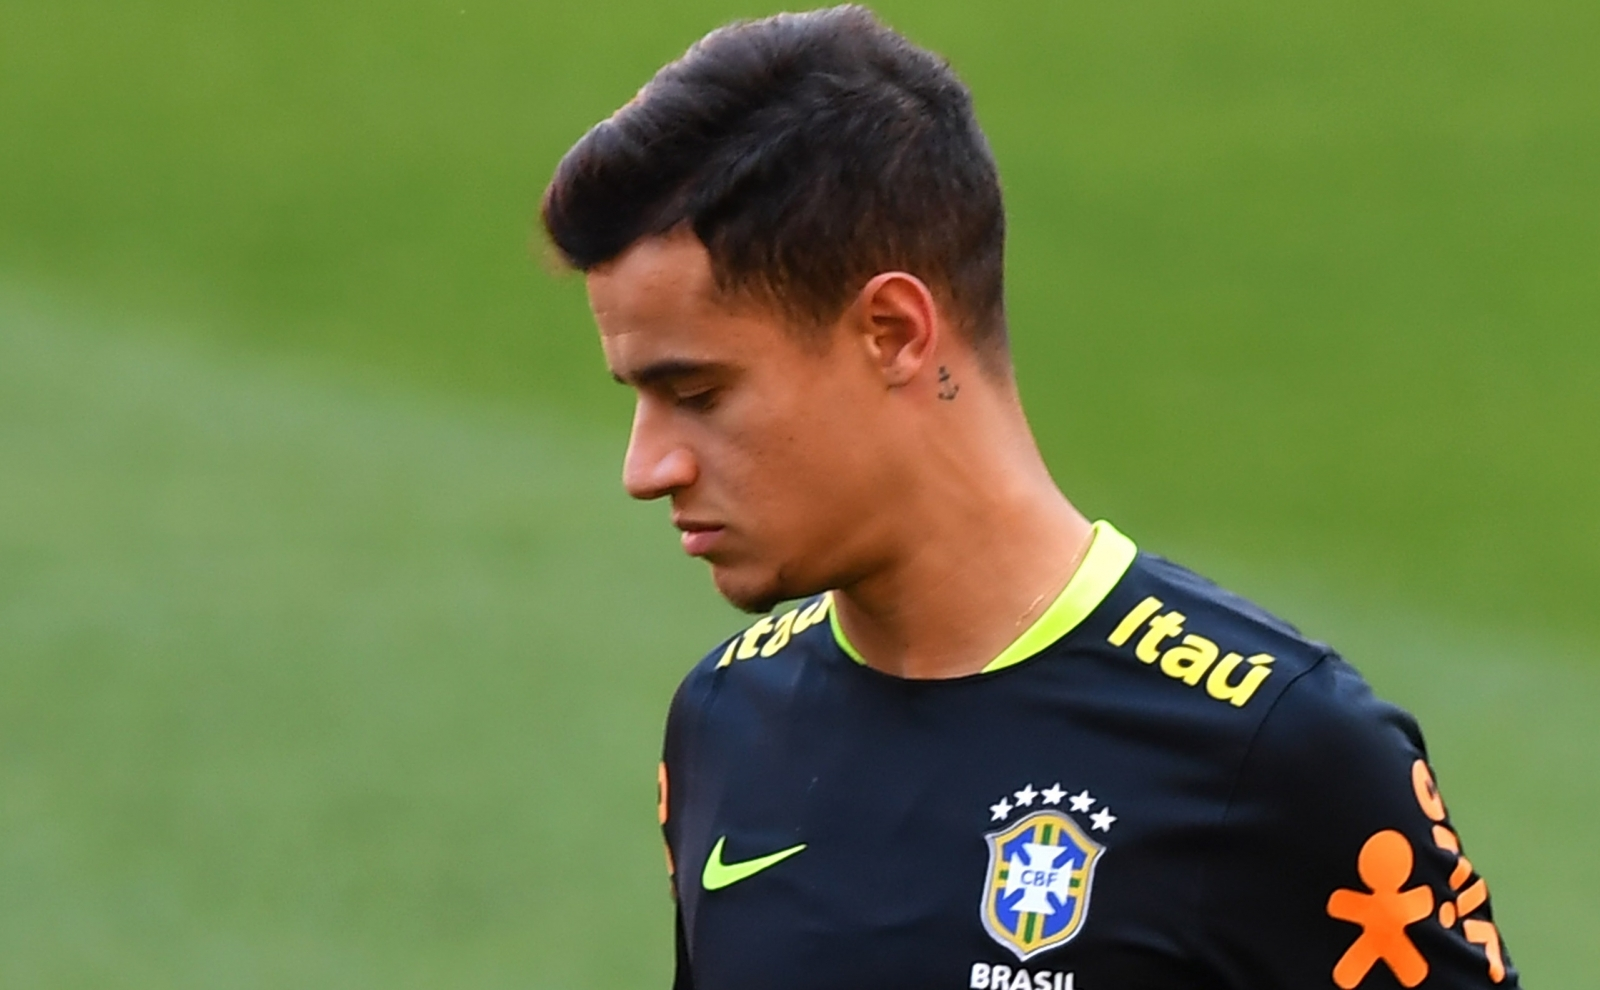 Barcelona claim Liverpool would have sold Philippe Coutinho for €200 million